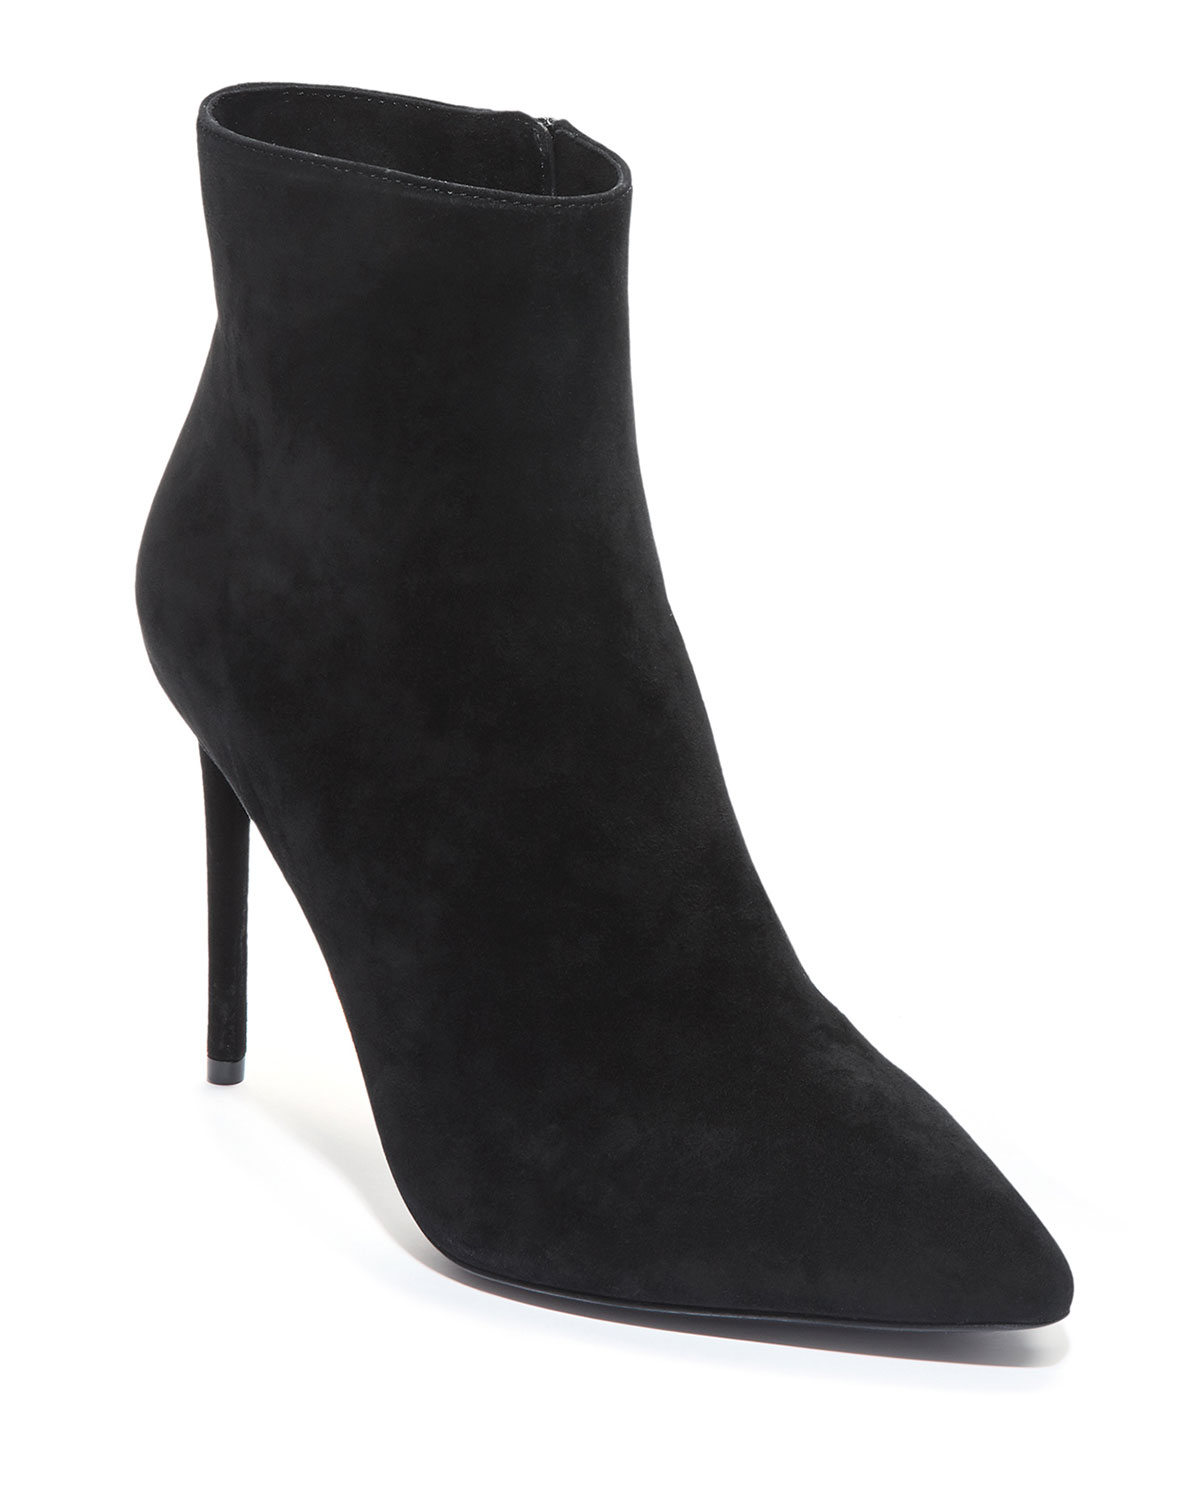 Celyn Suede Stiletto Booties